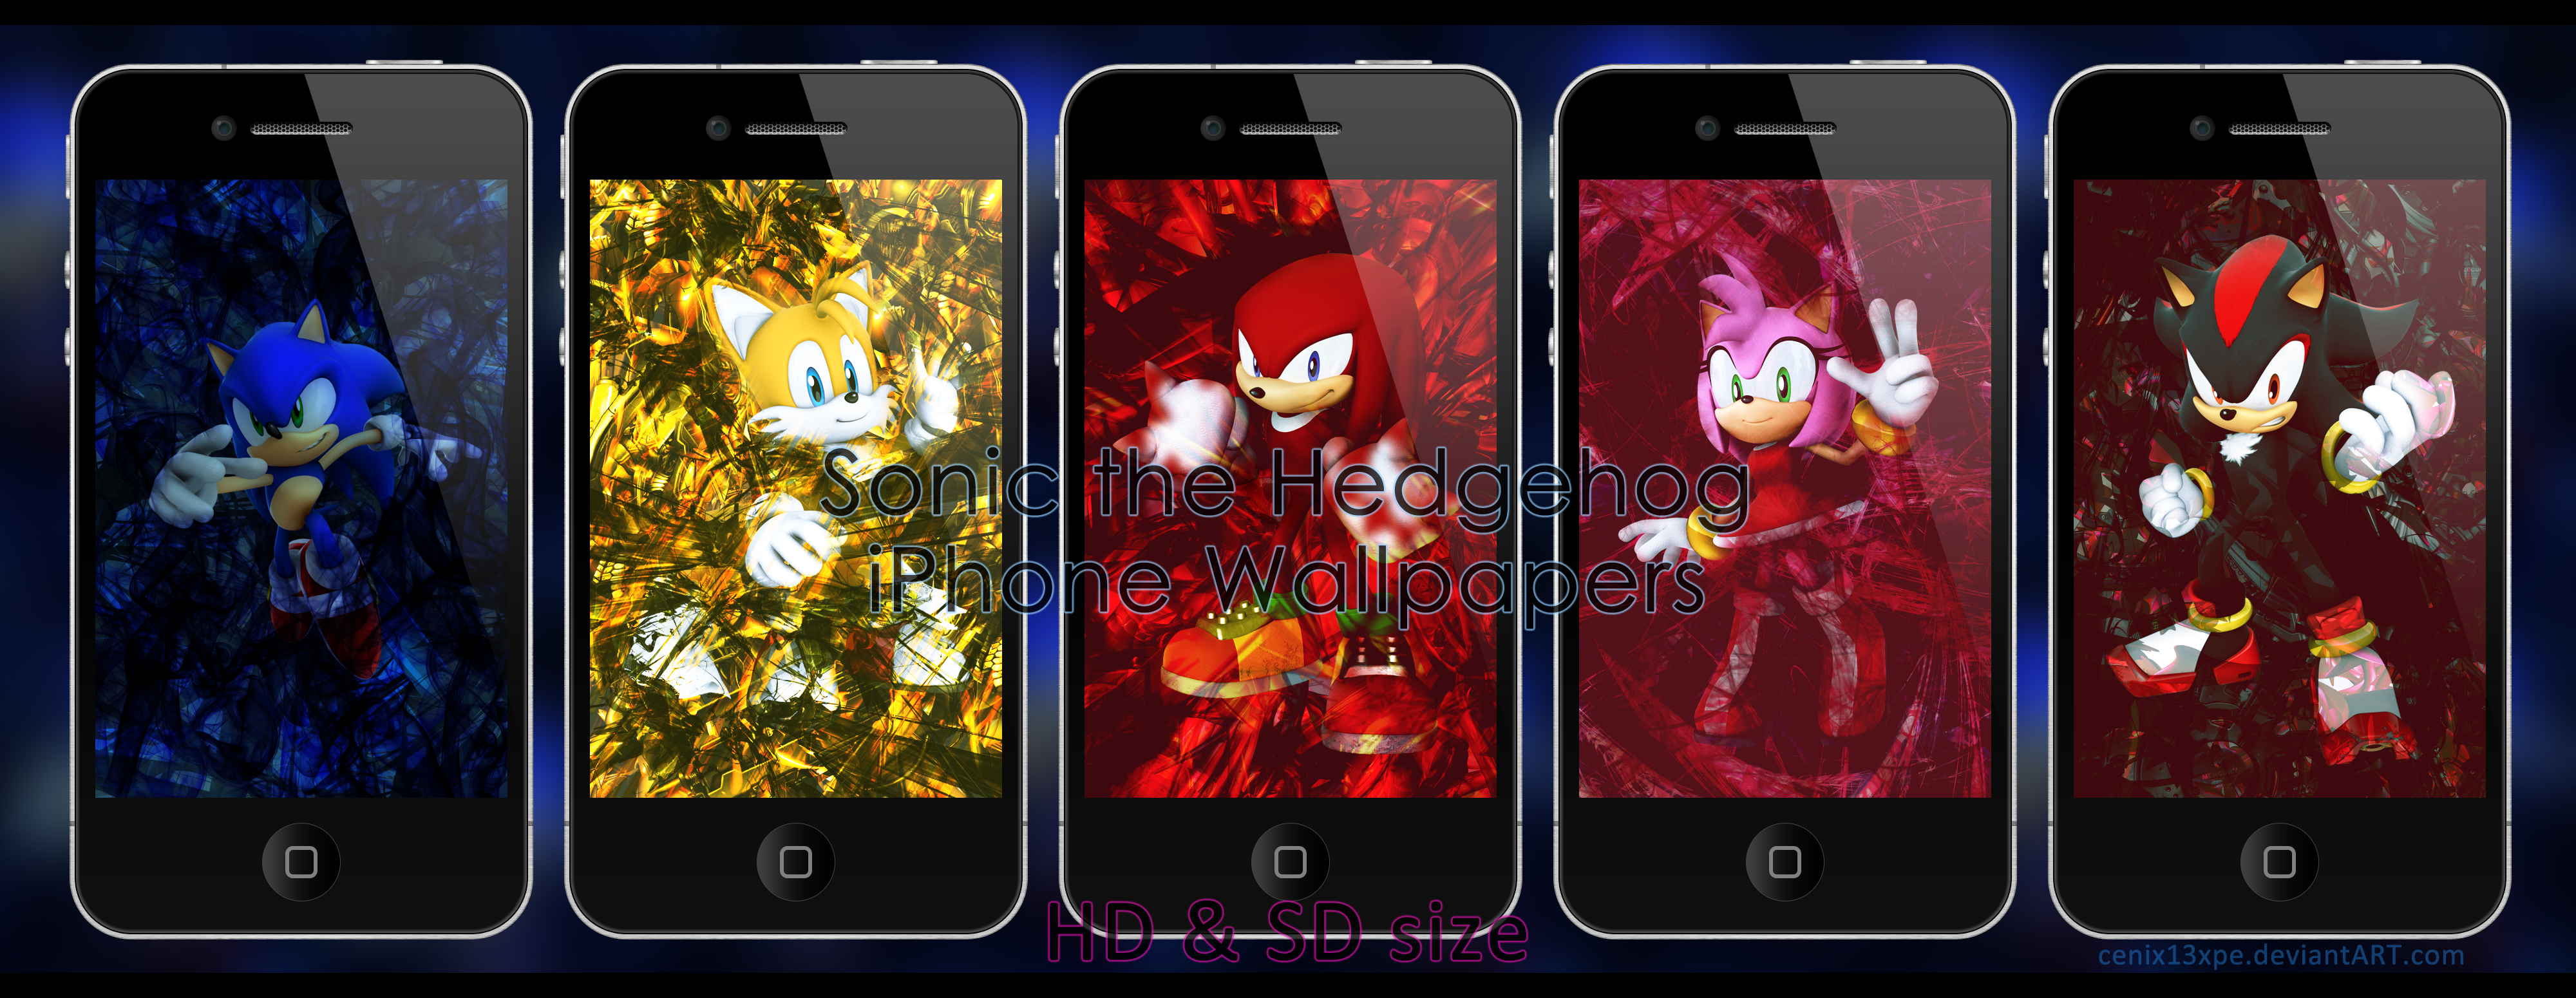 Pictures Of Shadow The Hedgehog Wallpaper Iphone Rock Cafe